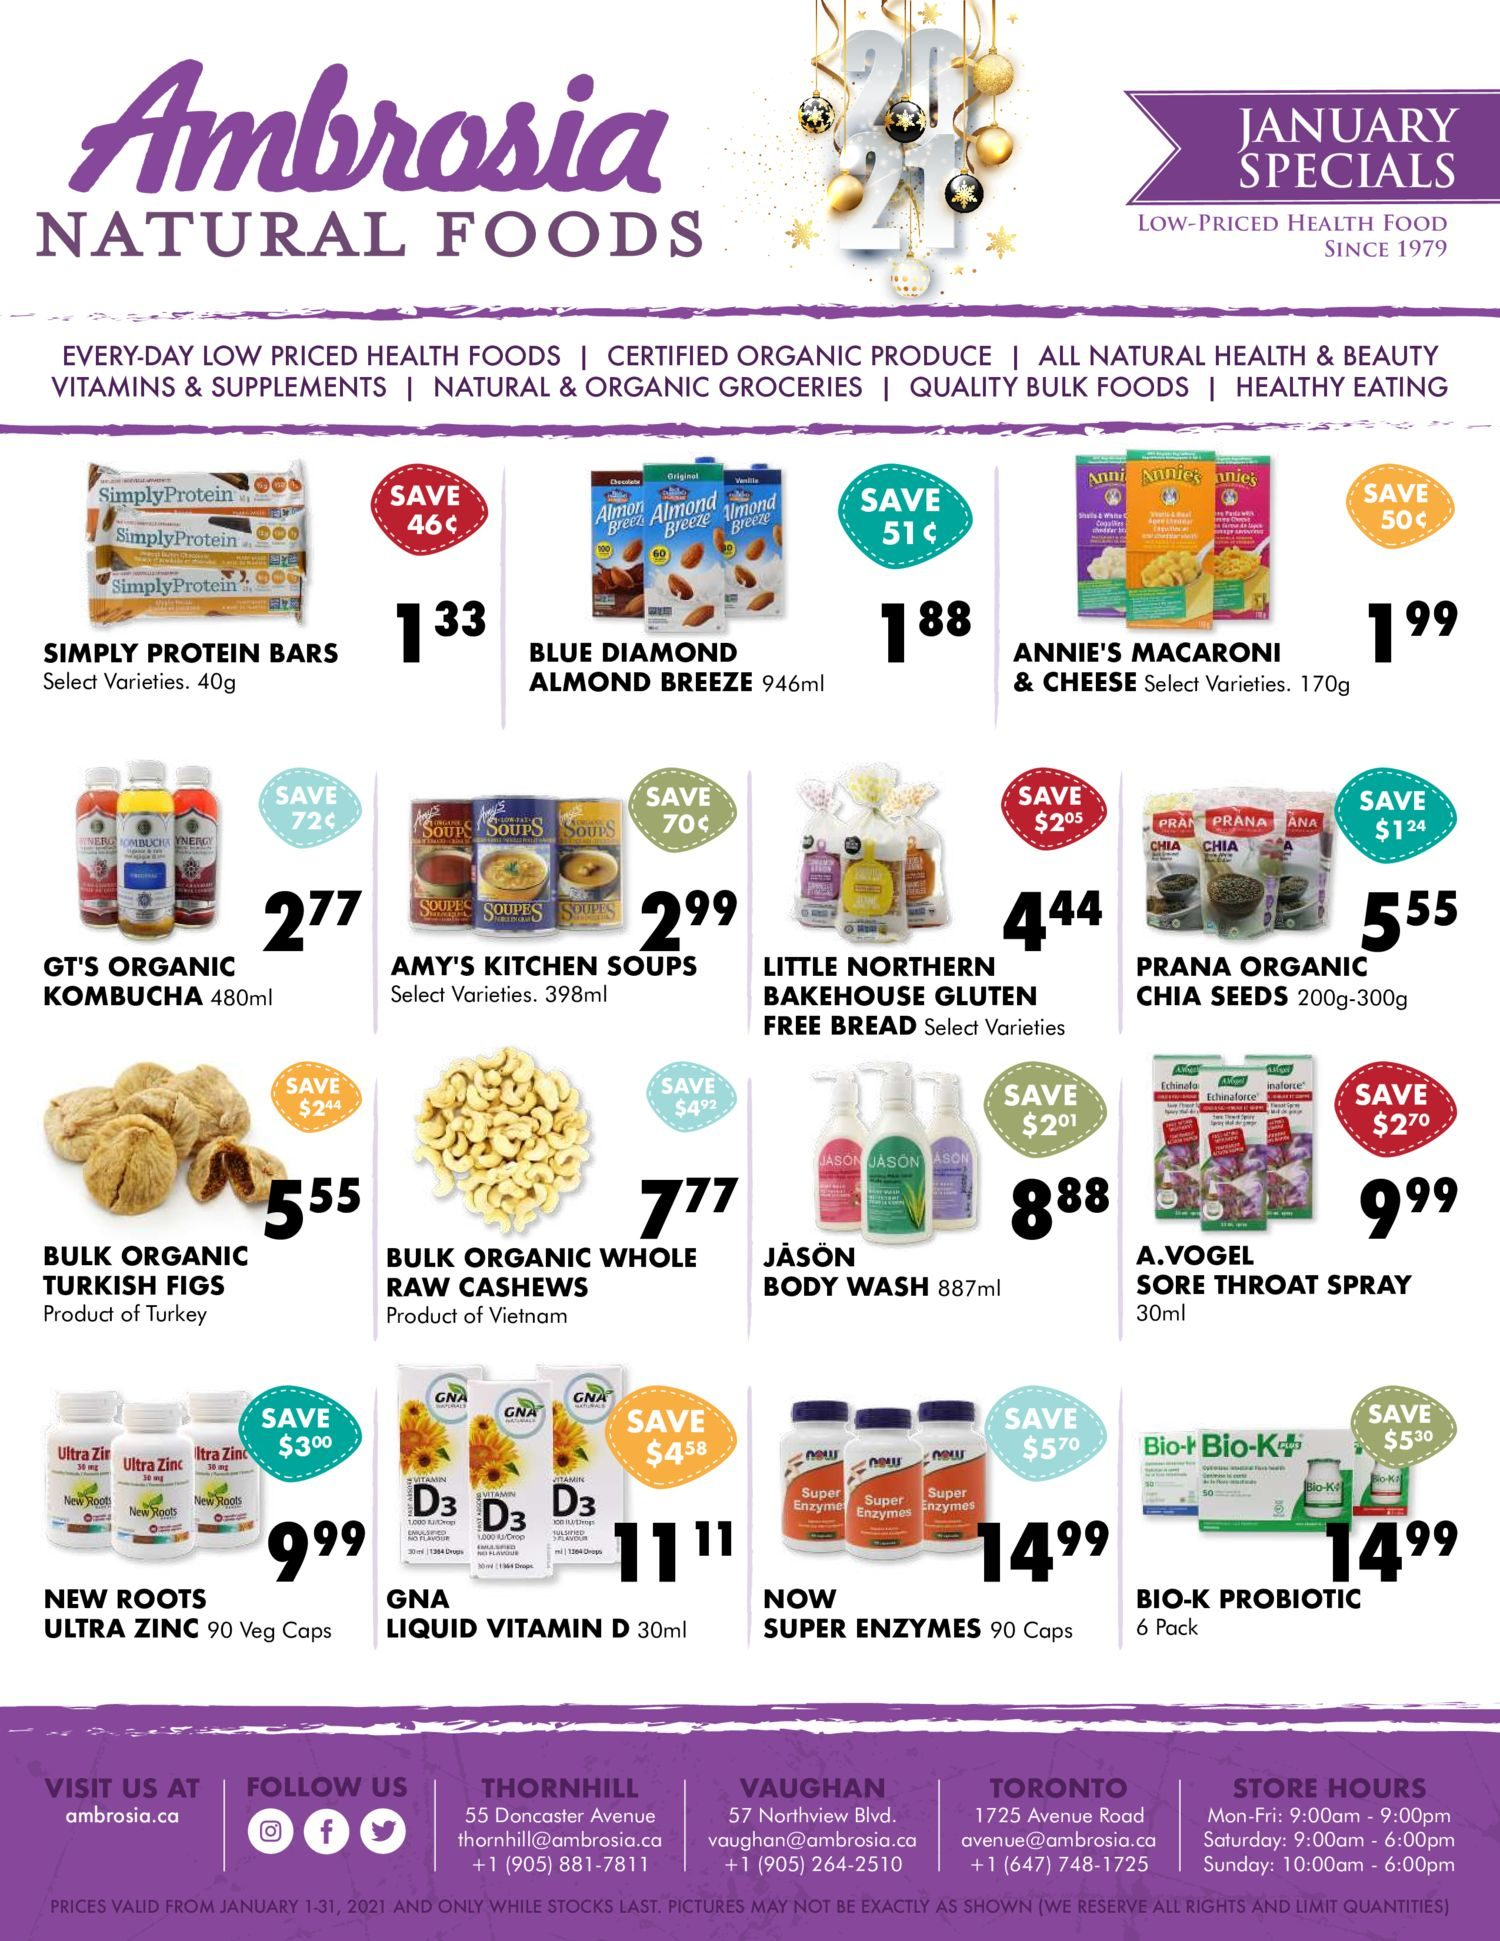 Ambrosia Natural Foods - January Specials